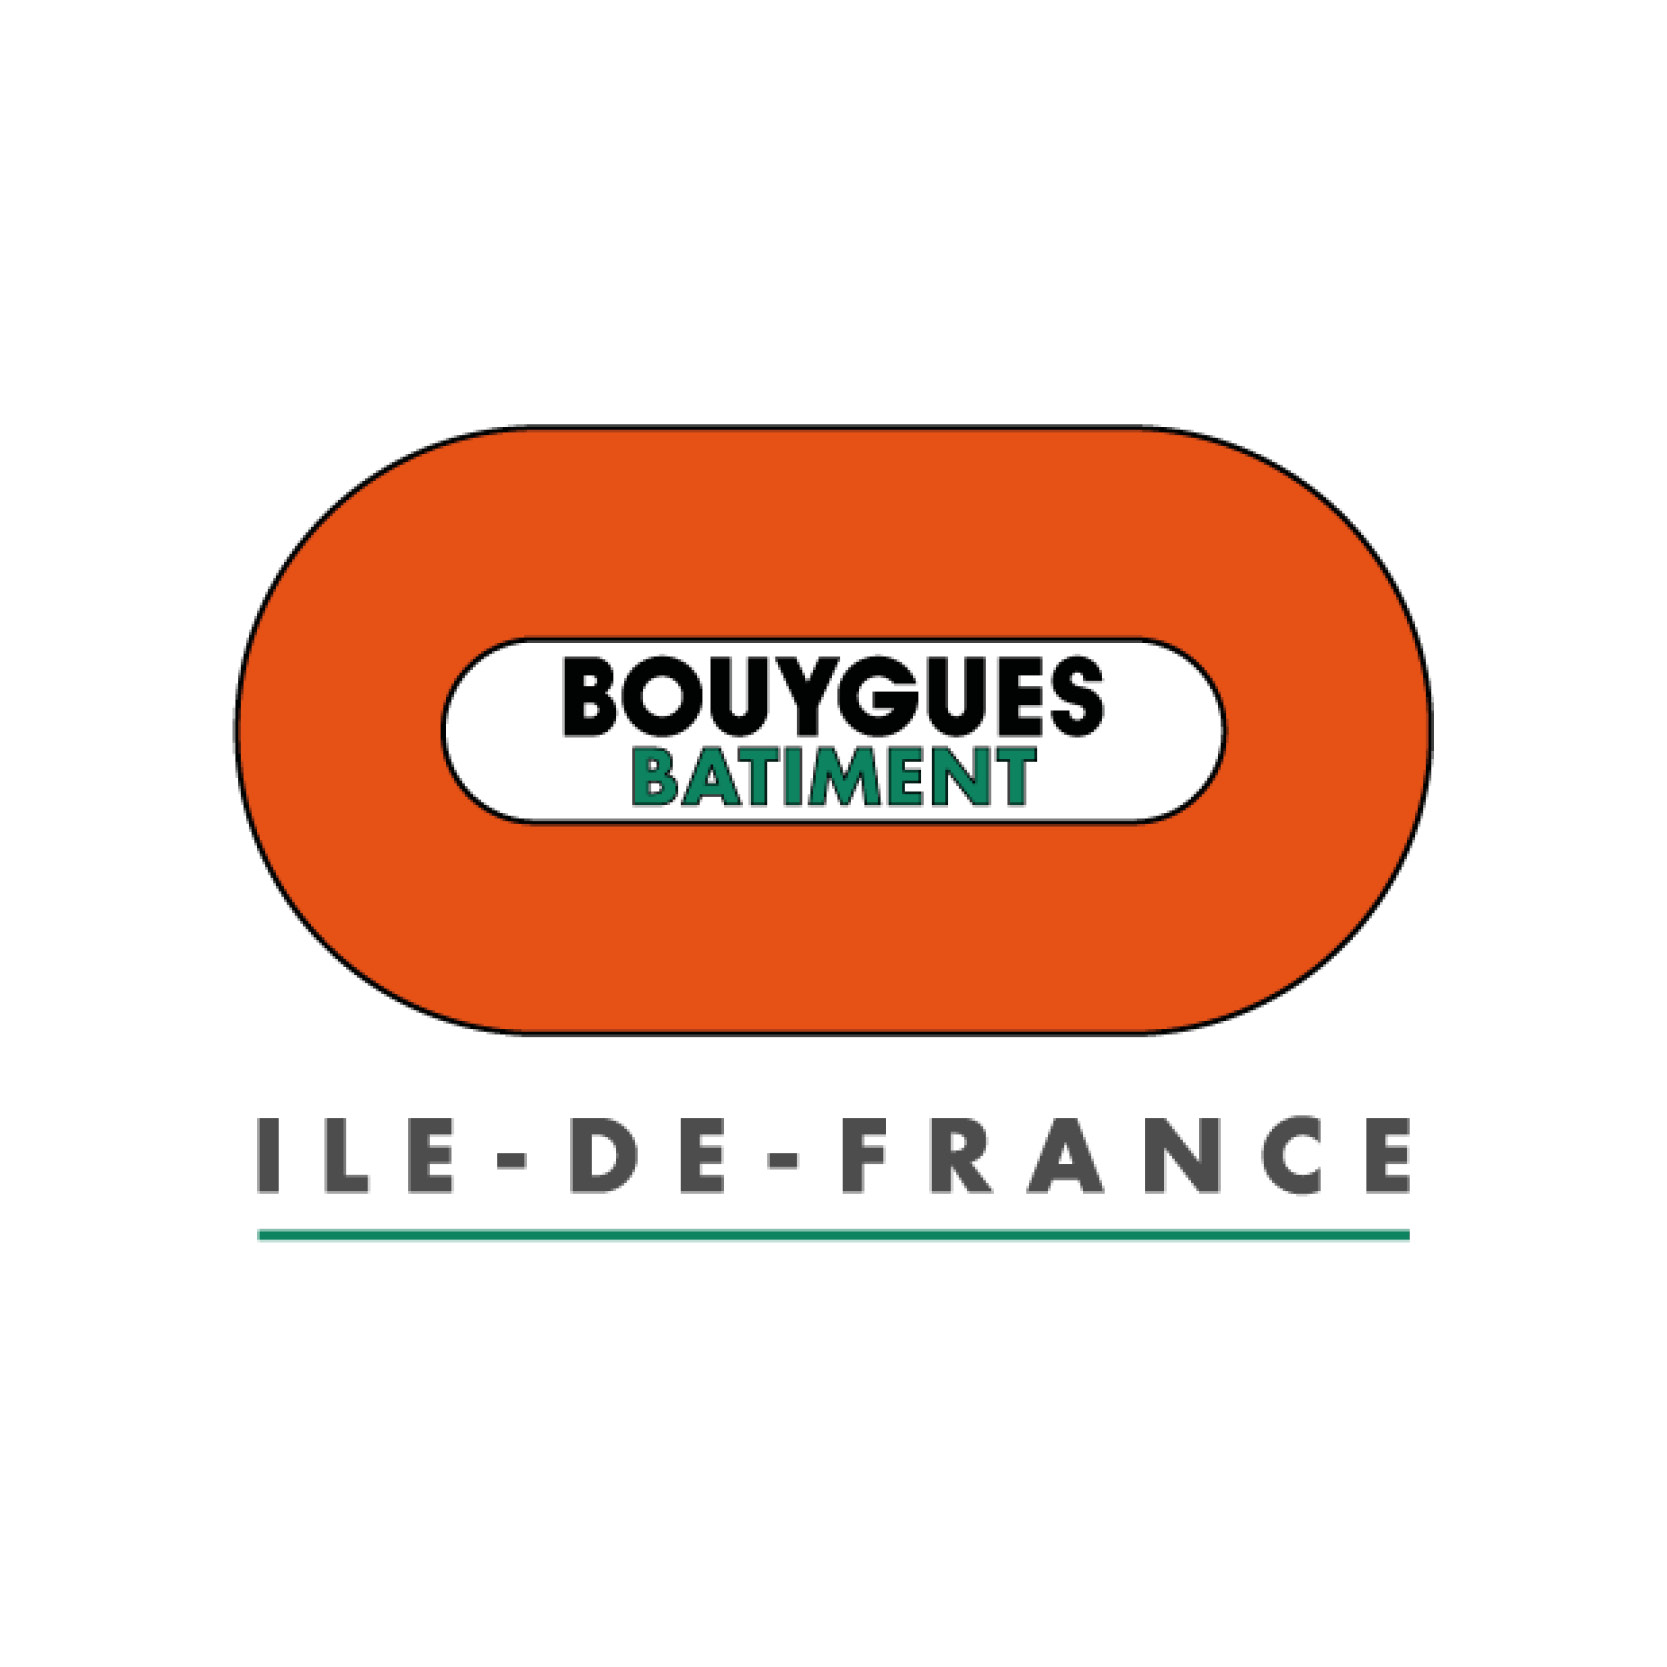 Bouygues Ile-de-France